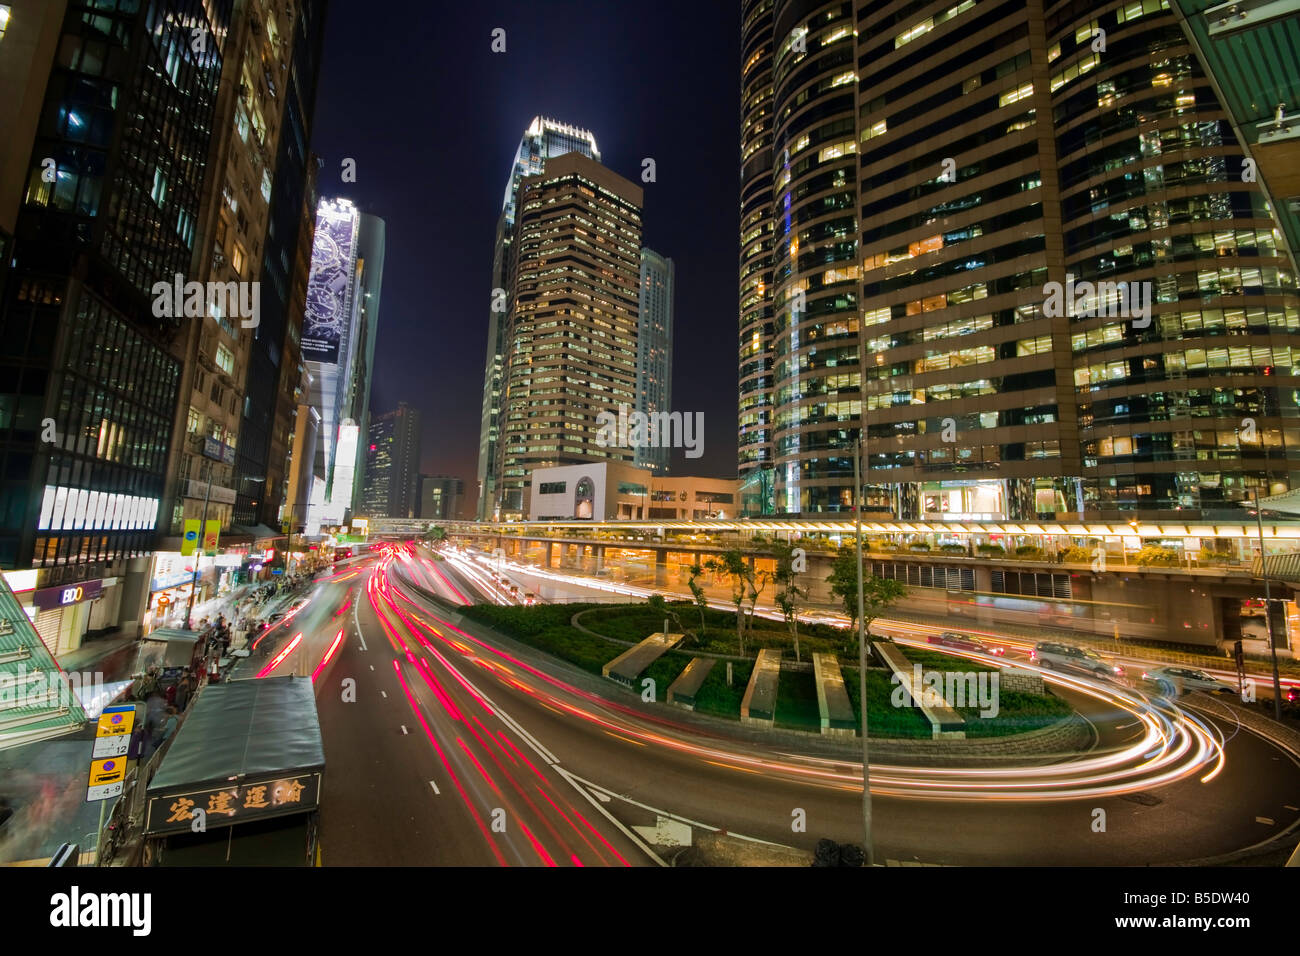 Centre Of Hong Kong At Night With Light Trails From Busy Roads Stock Photo Alamy